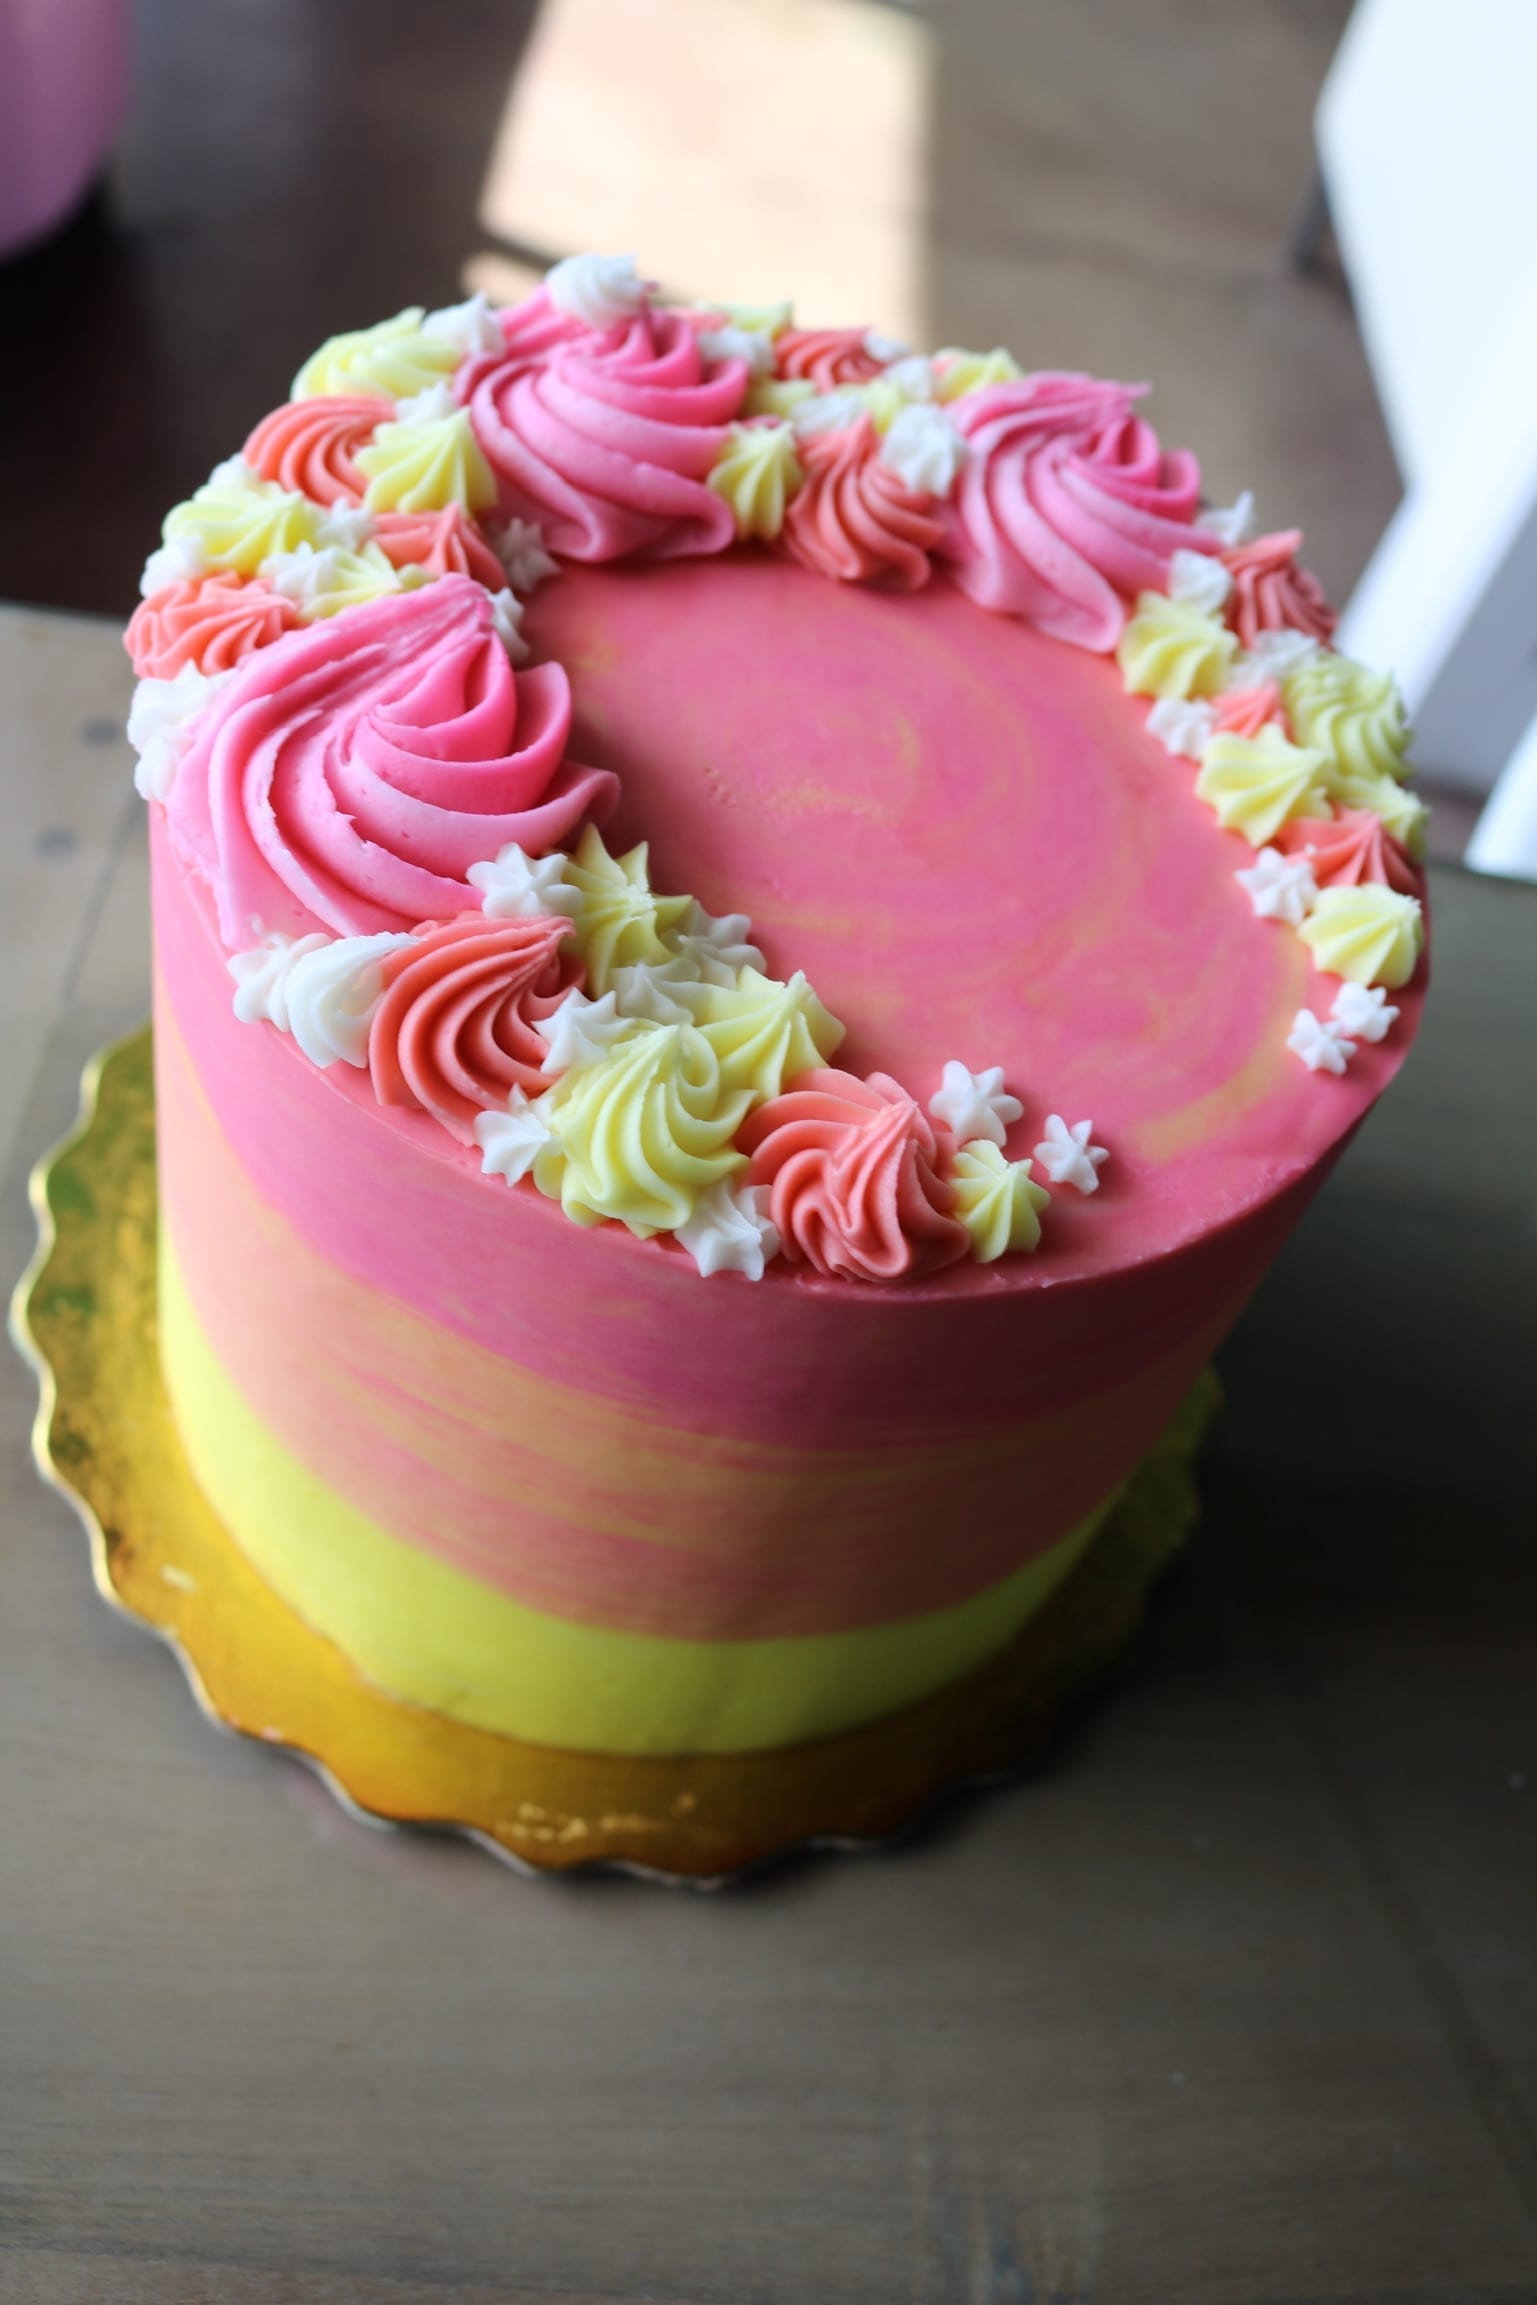 Pink, Yellow and Orange cake with Rosettes | 3 Sweet Girls Cakery